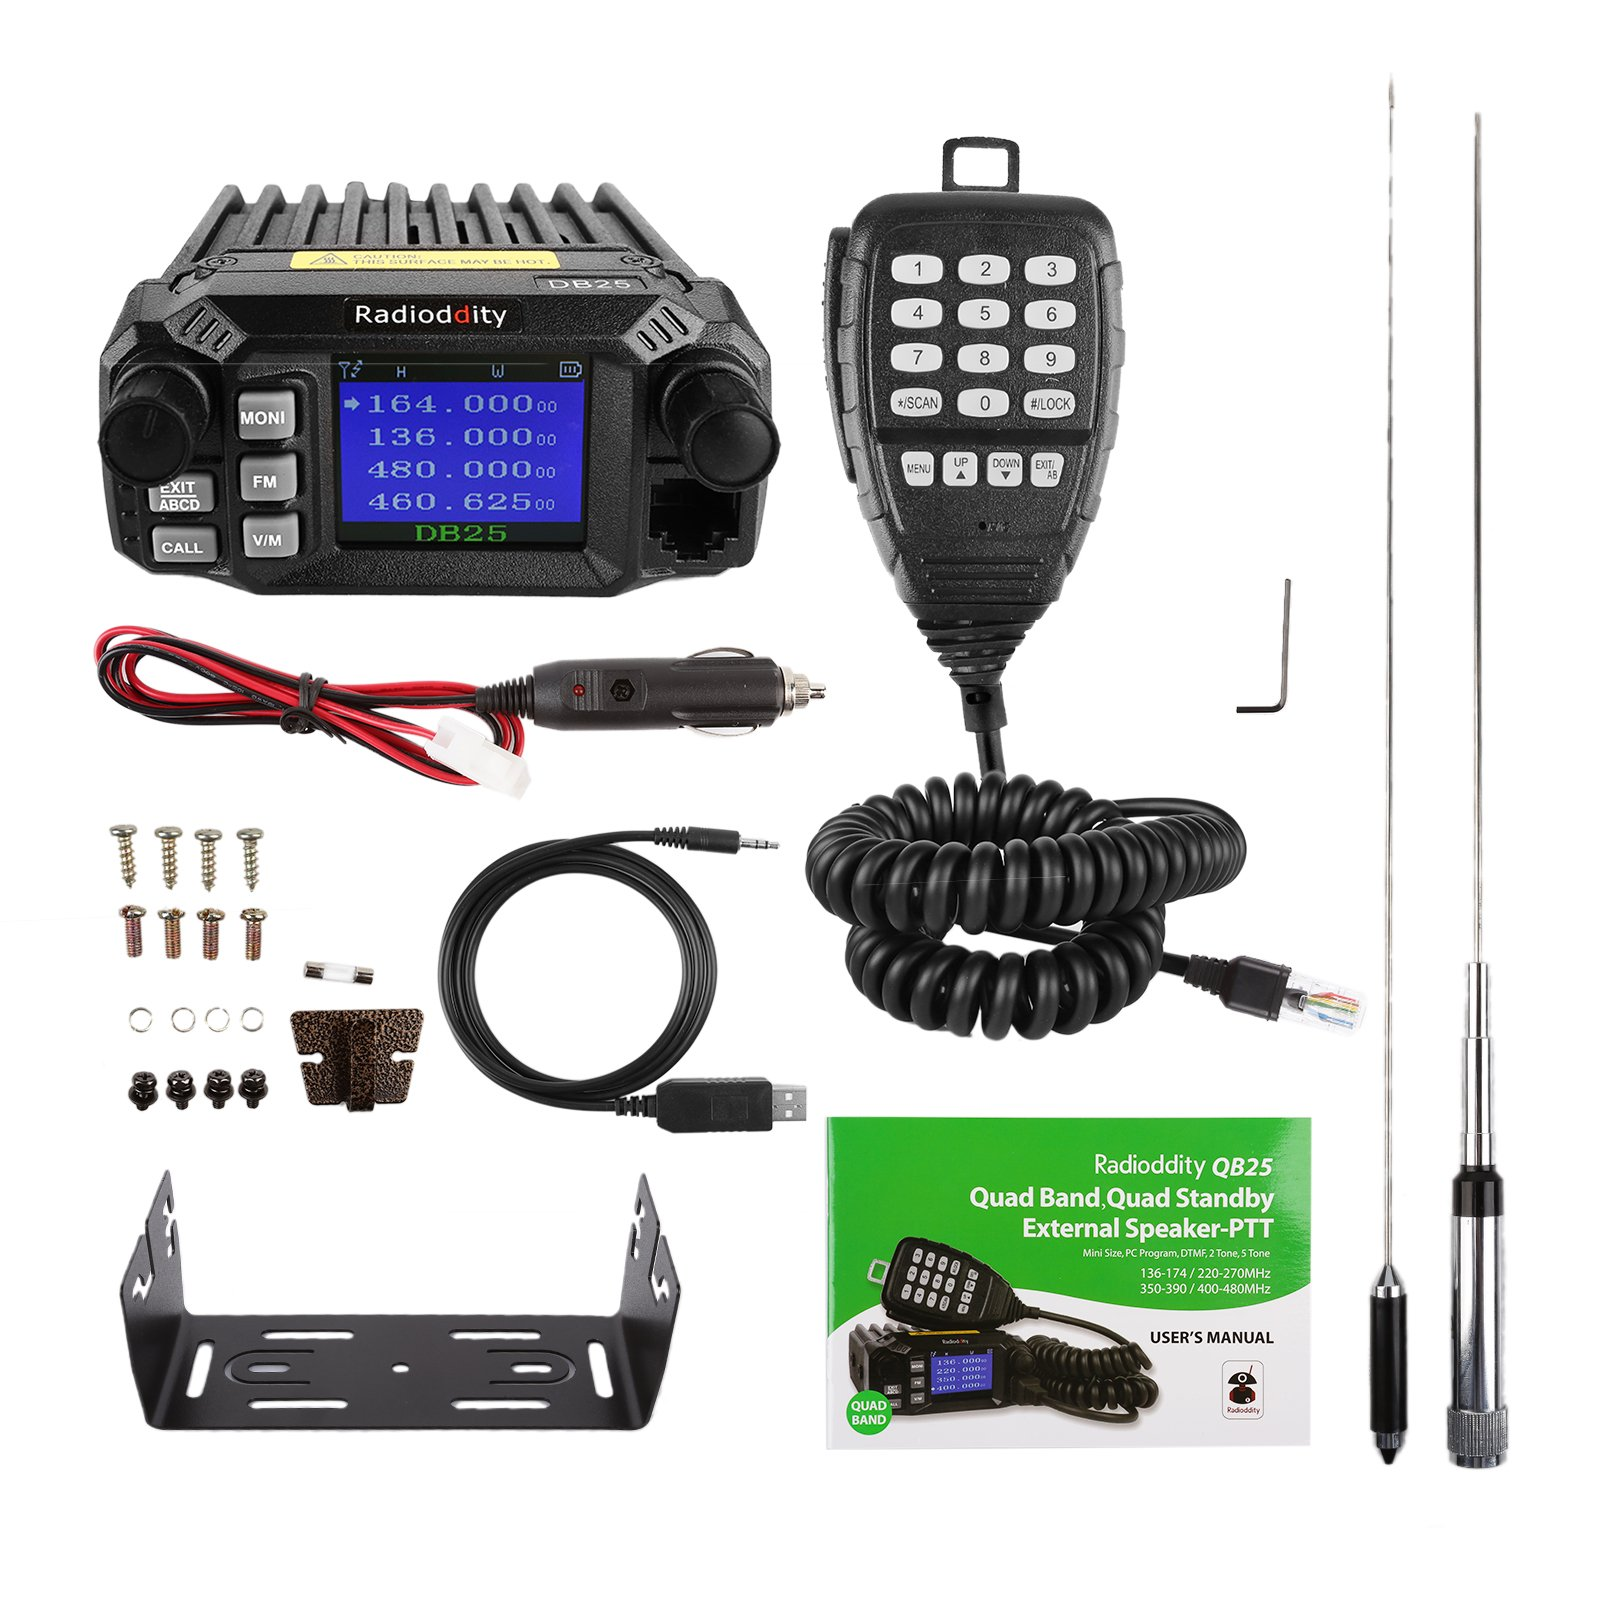 Radioddity QB25 Pro Quad Band Quad-standby Mini Mobile Car Truck Radio, VHF UHF 144/220/350/440 MHz, 25W Vehicle Transceiver with Cable & CD + 50W High Gain Quad Band Antenna by Radioddity (Image #7)